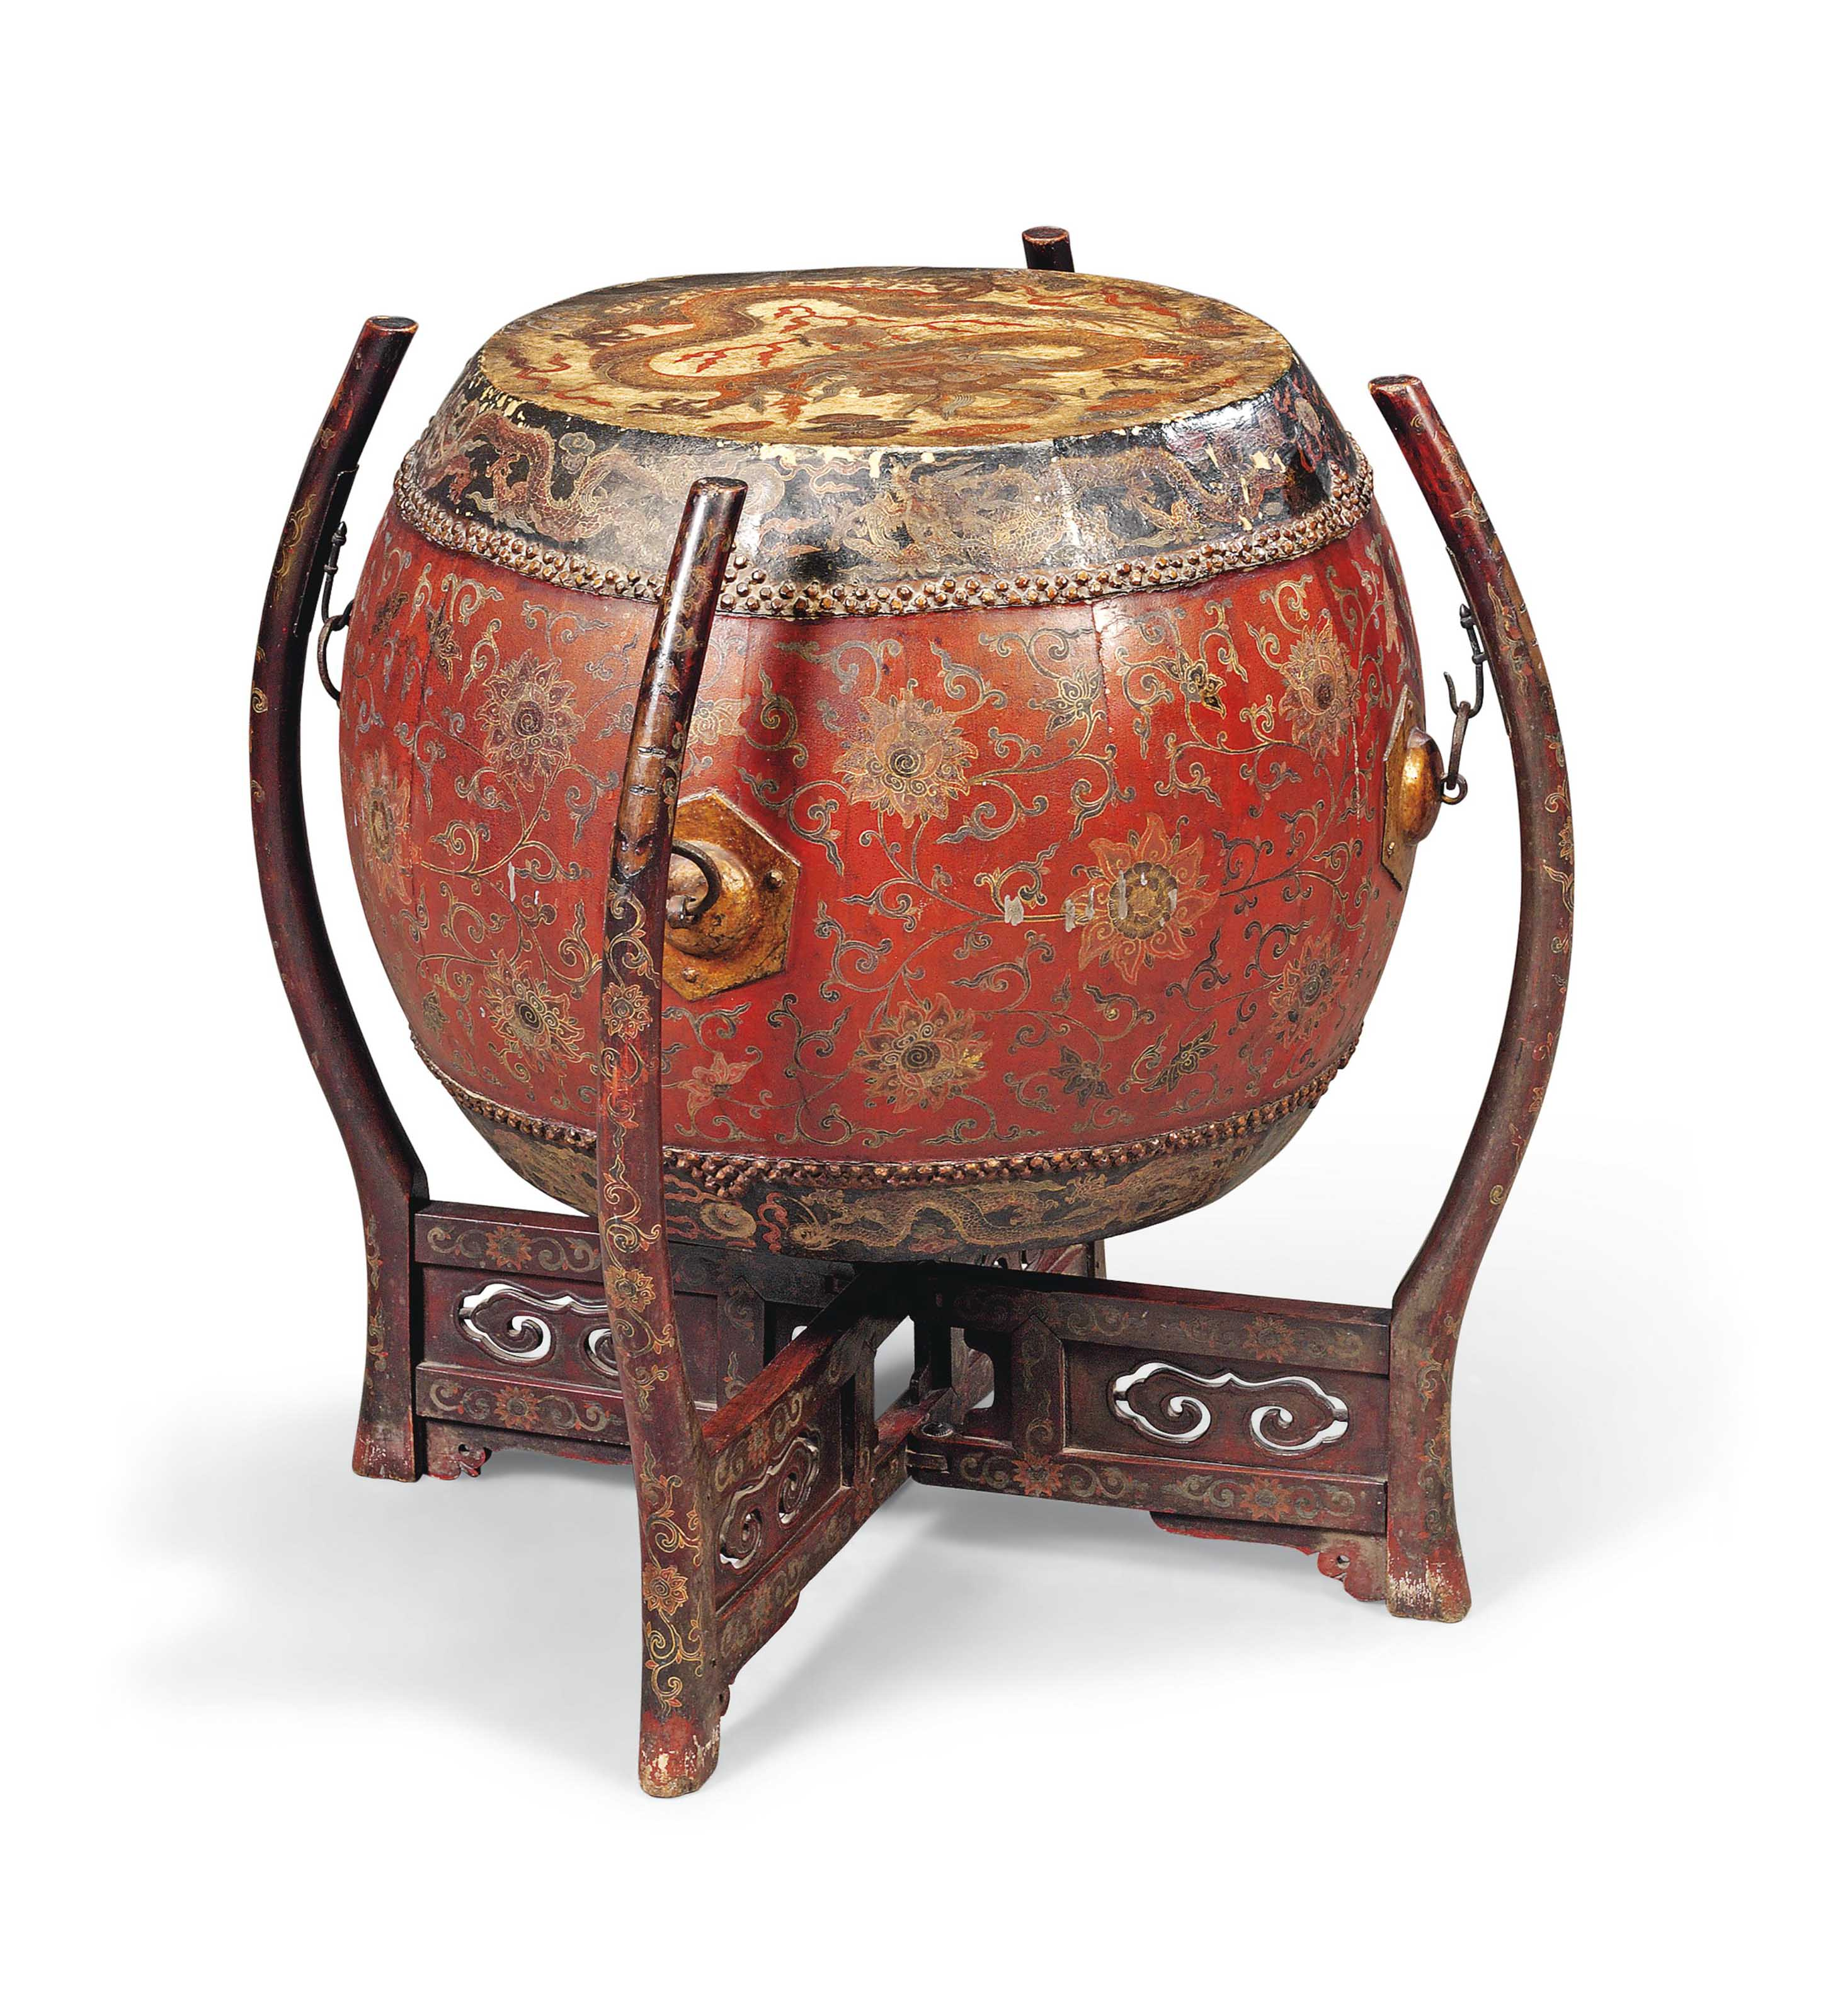 A RARE CHINESE LACQUER DRUM AN